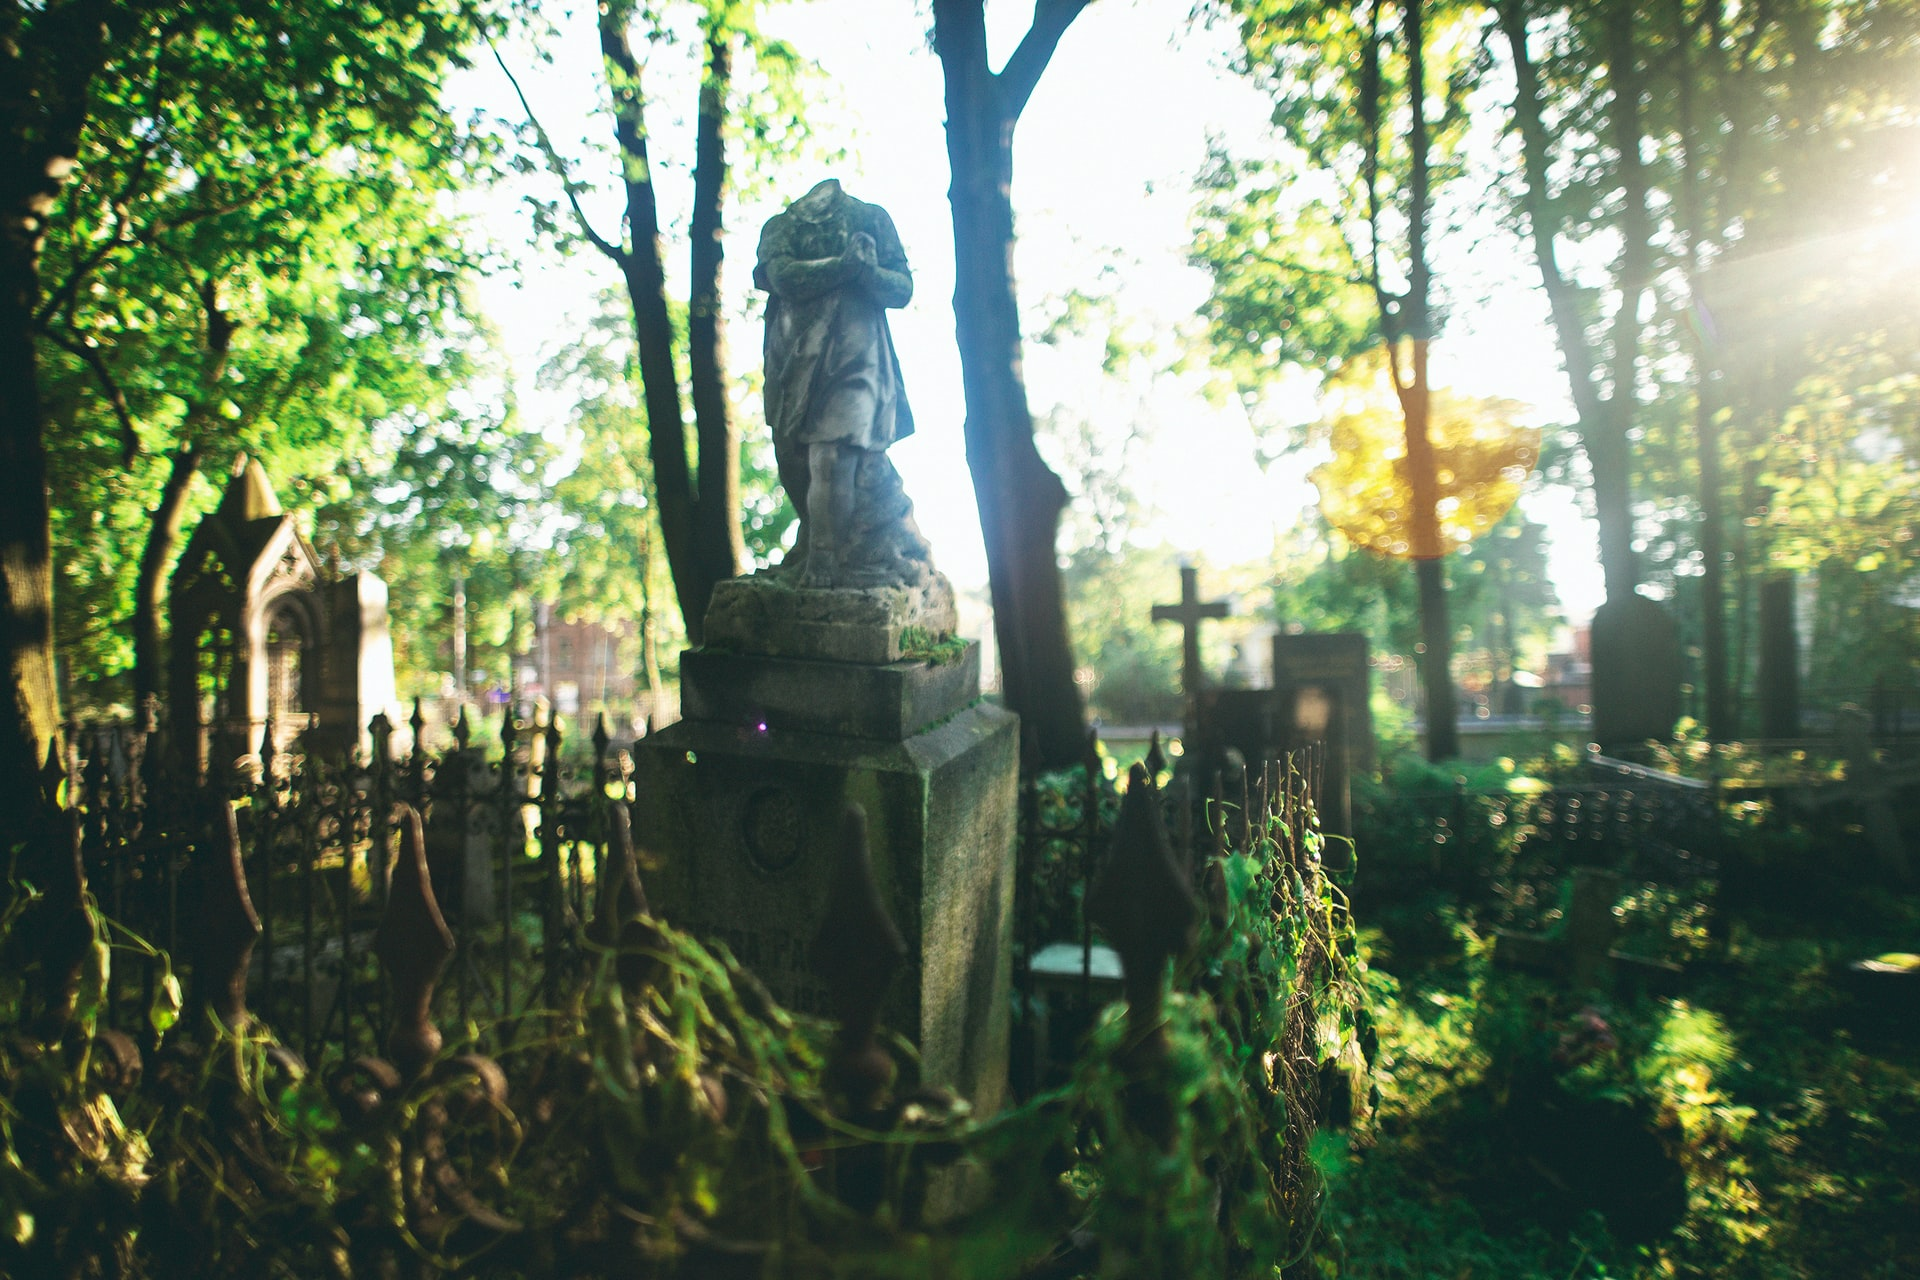 Garden of the Arcane Delights - The image shows a cemetery in the woods, thus some tree are visible together along with many tombs. At the center of the image, between two trees there is a headless statue